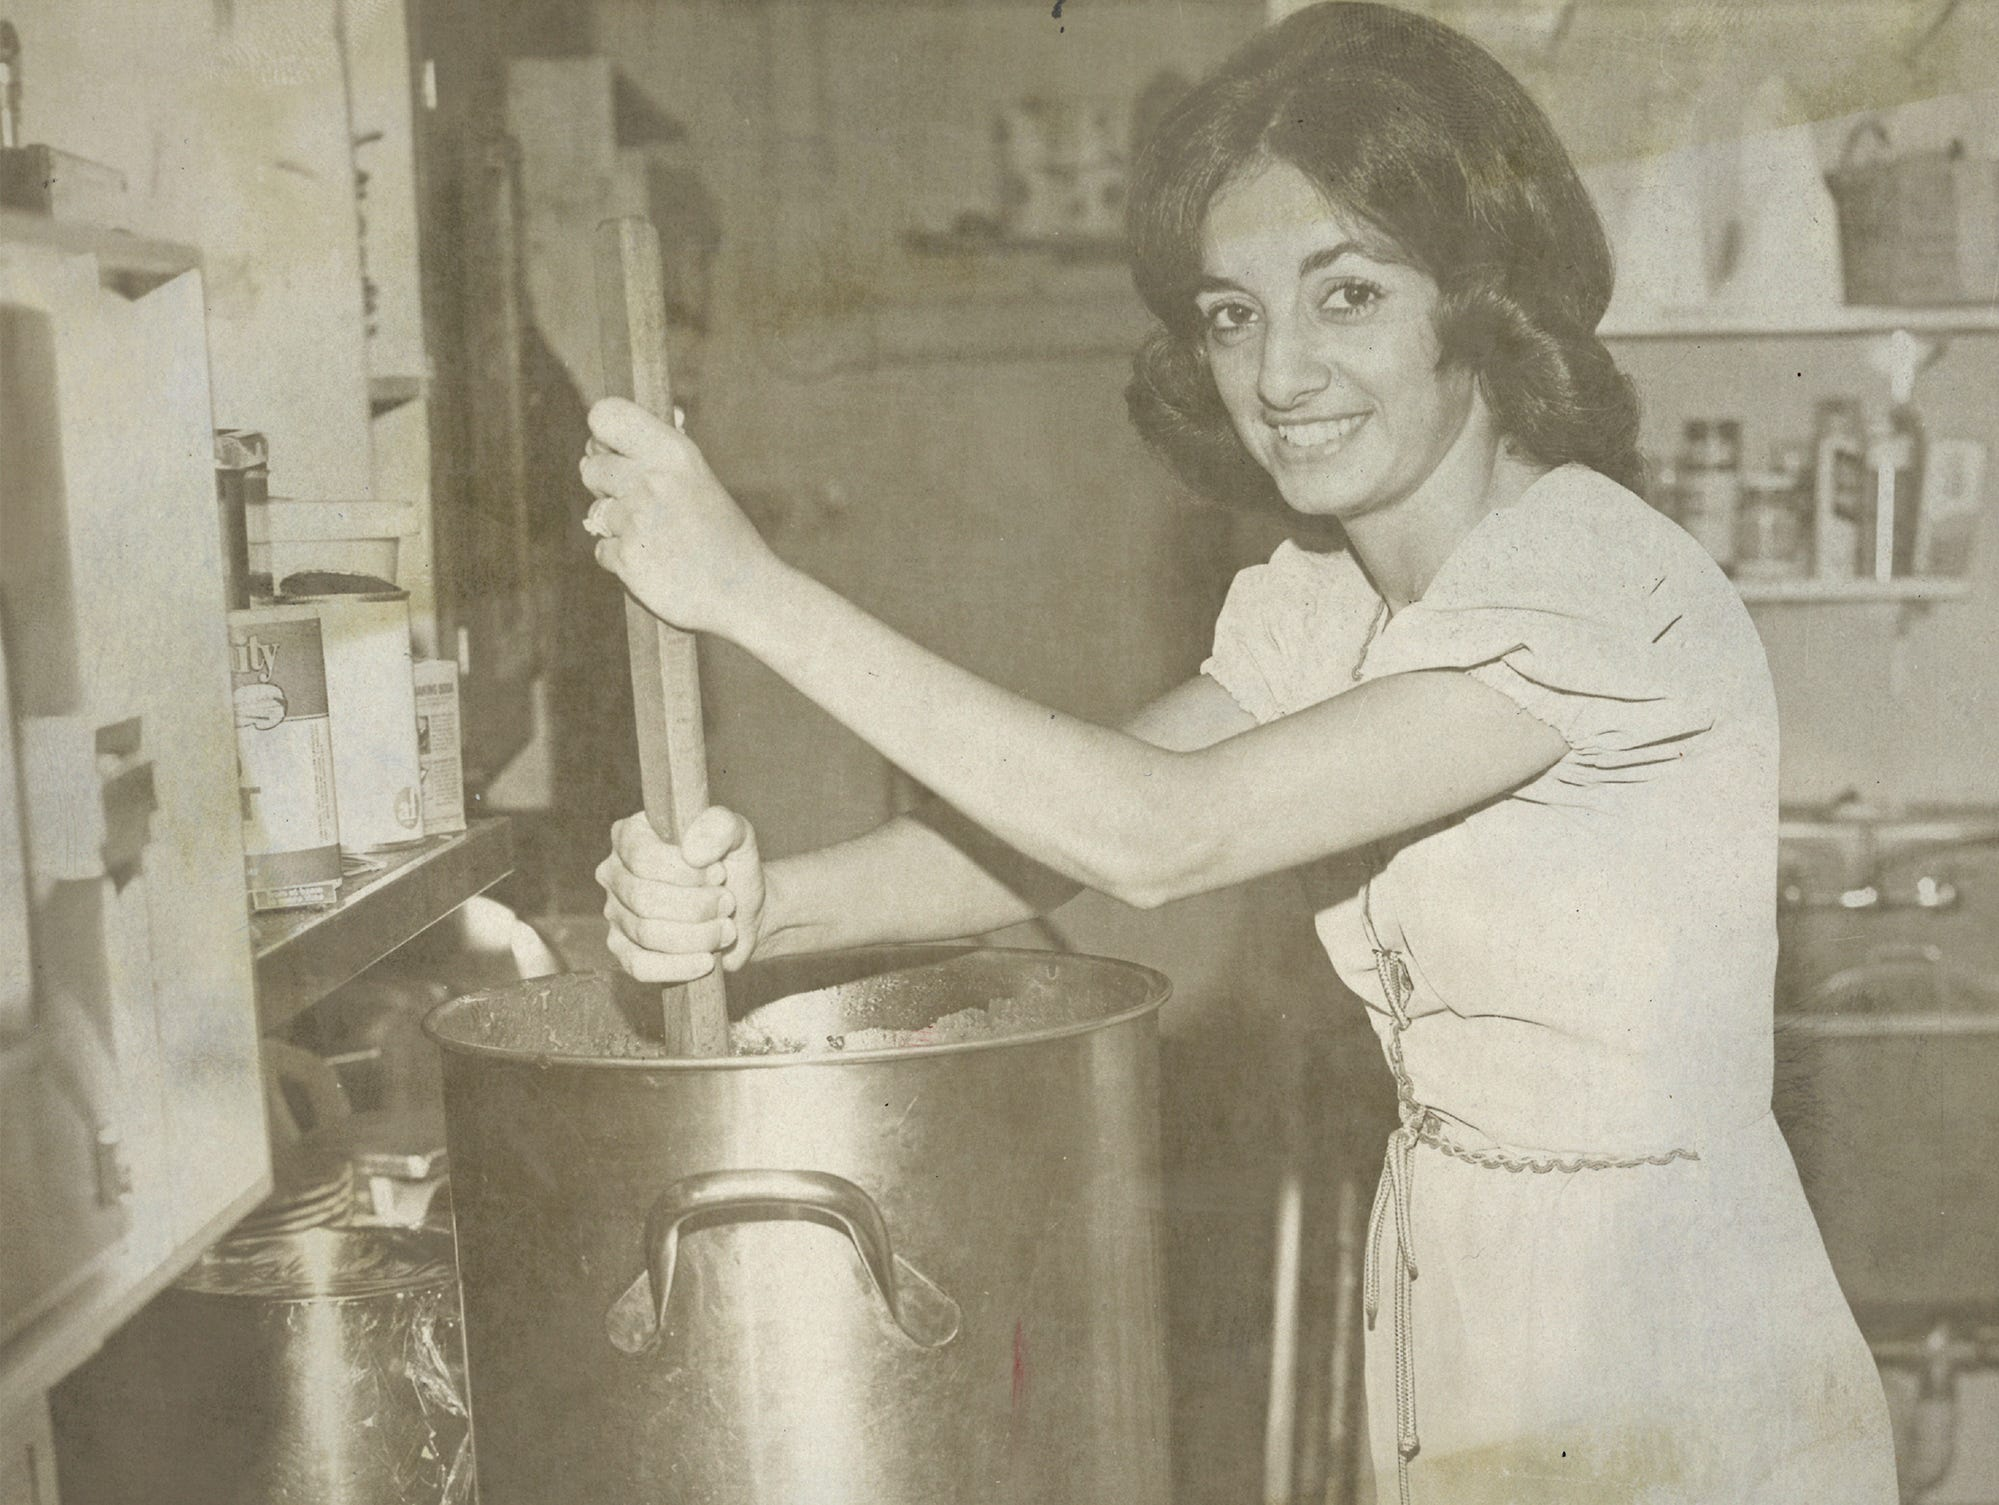 Sharon Baudo Smith stirs a pot in Baudo's Restaurant in Jackson, Tenn. The restaurant still makes their own sauces and dressings using the same recipes, Smith said.